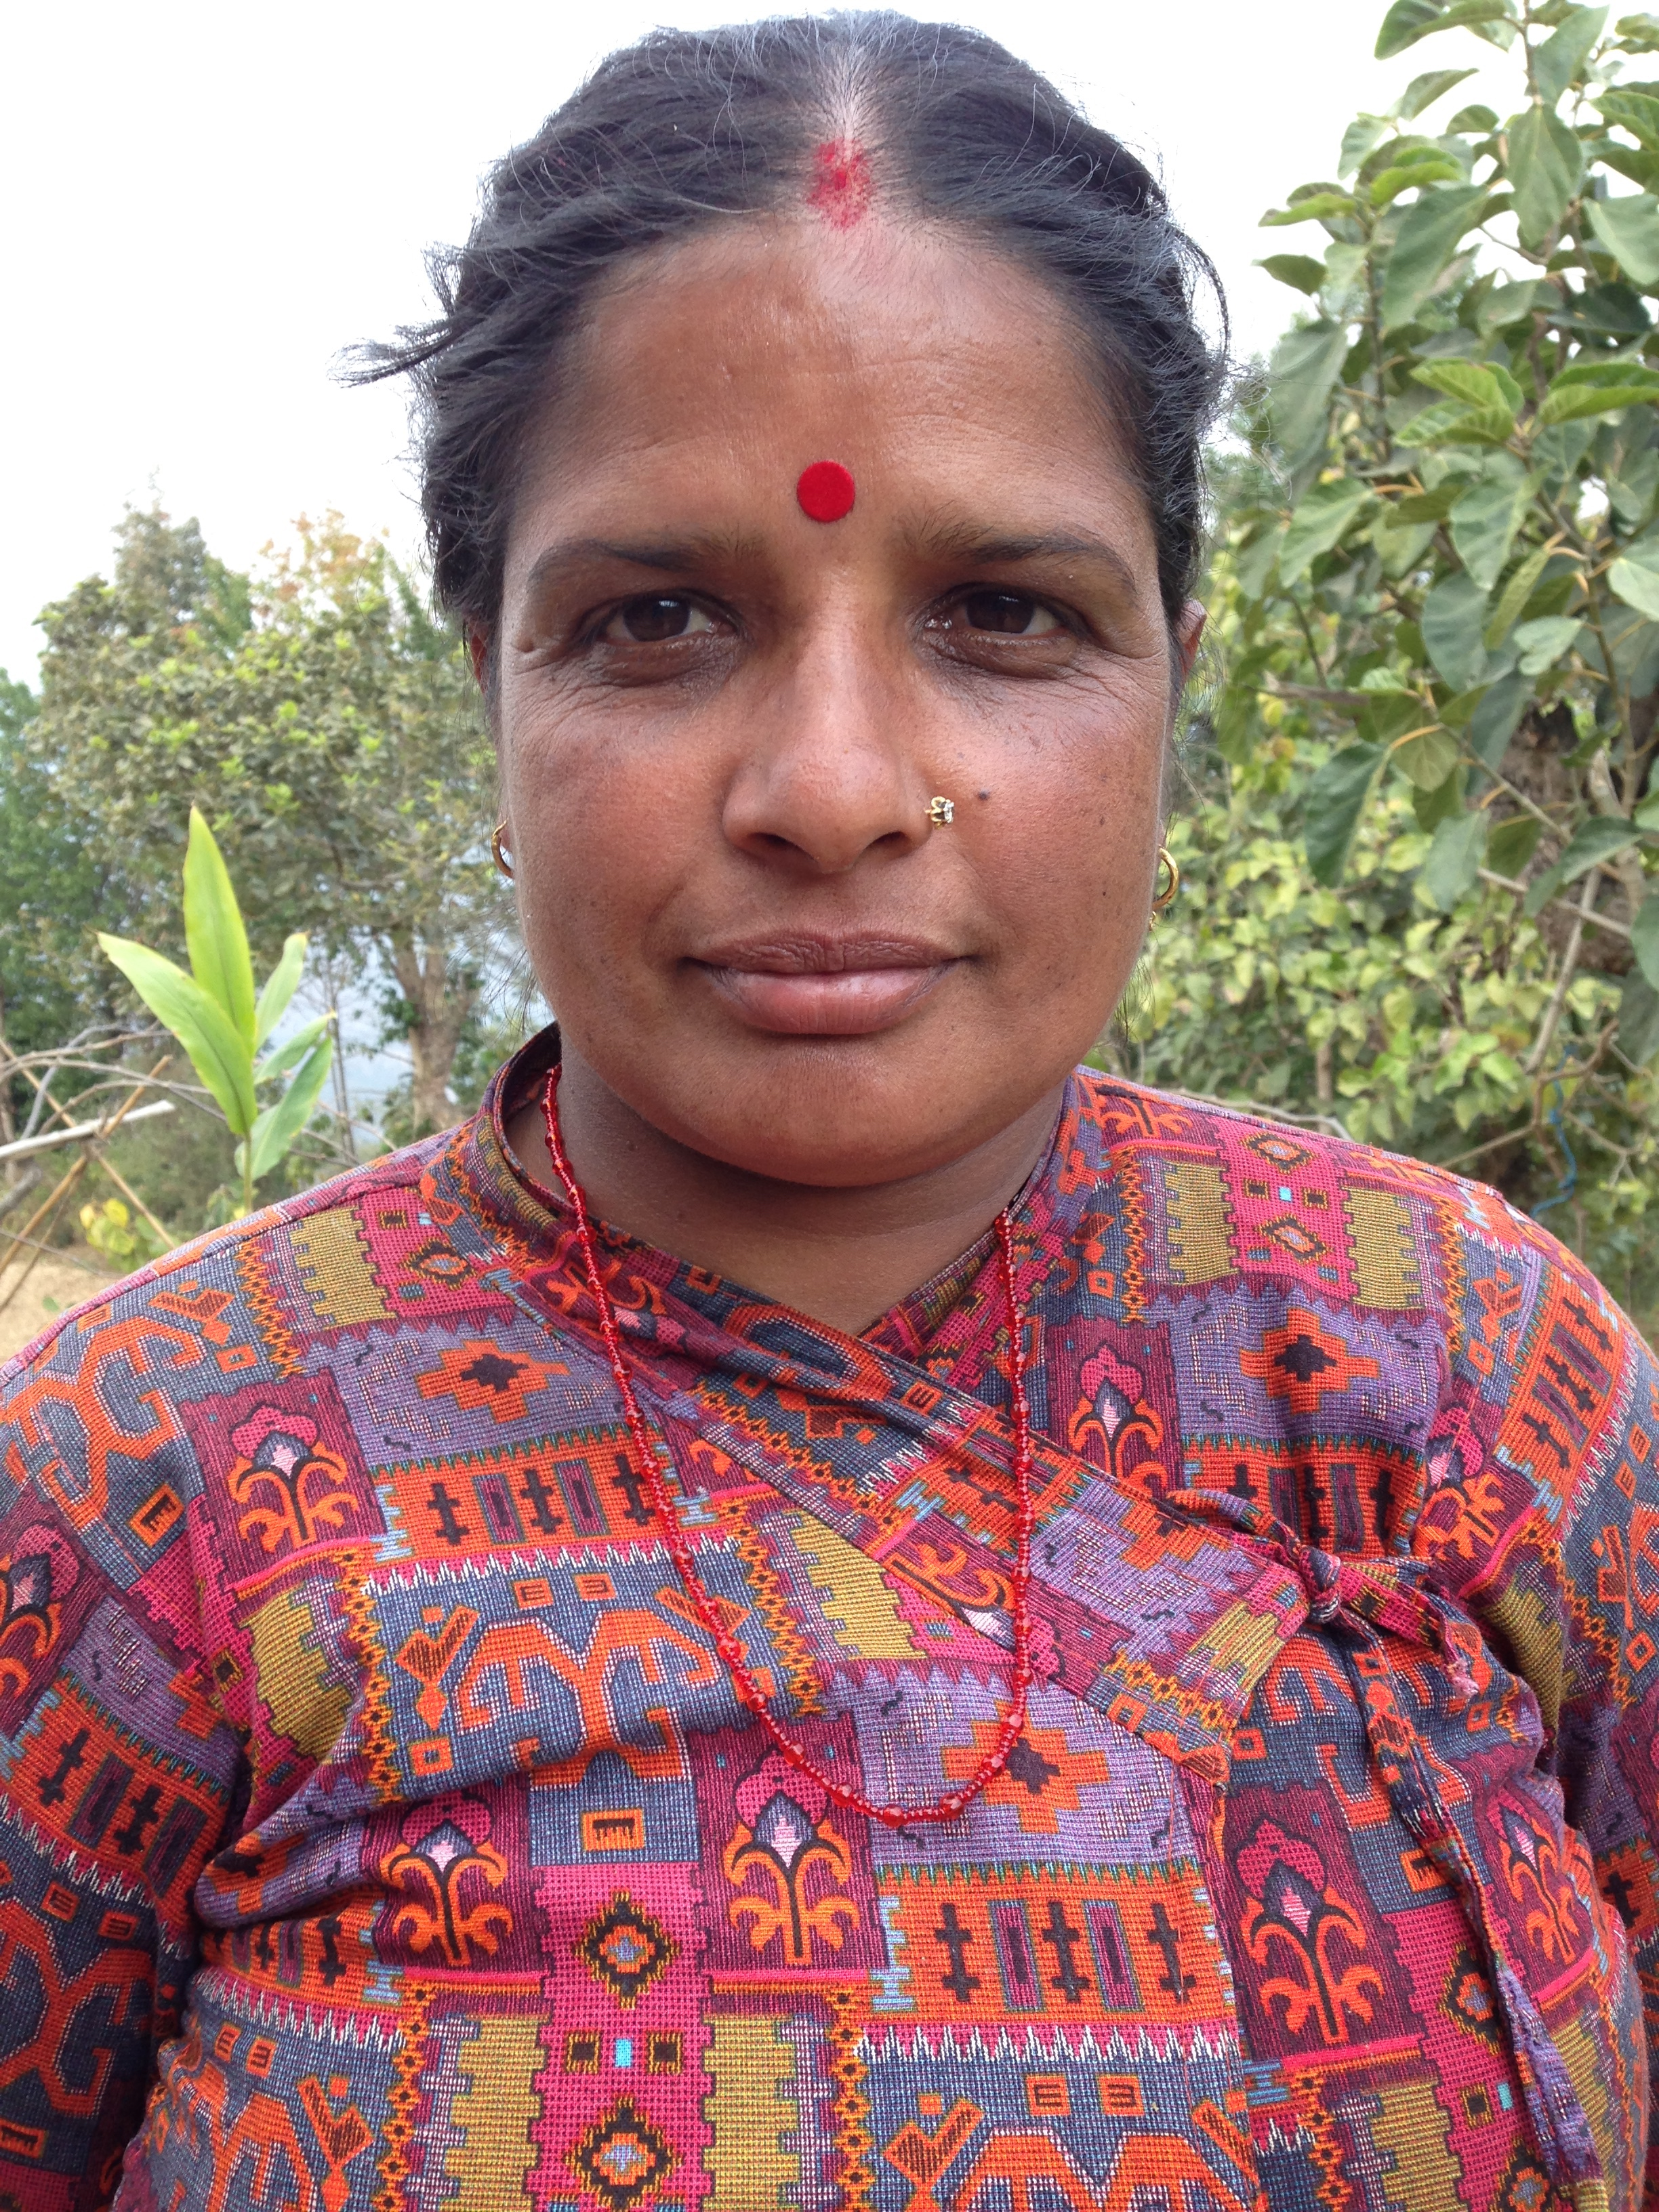 Gita Bhurtel,Nursery Assistant - Gita is from Vedabaari, Namobuddha-3. She has been working with Everything Organic since it's inception in 2010.